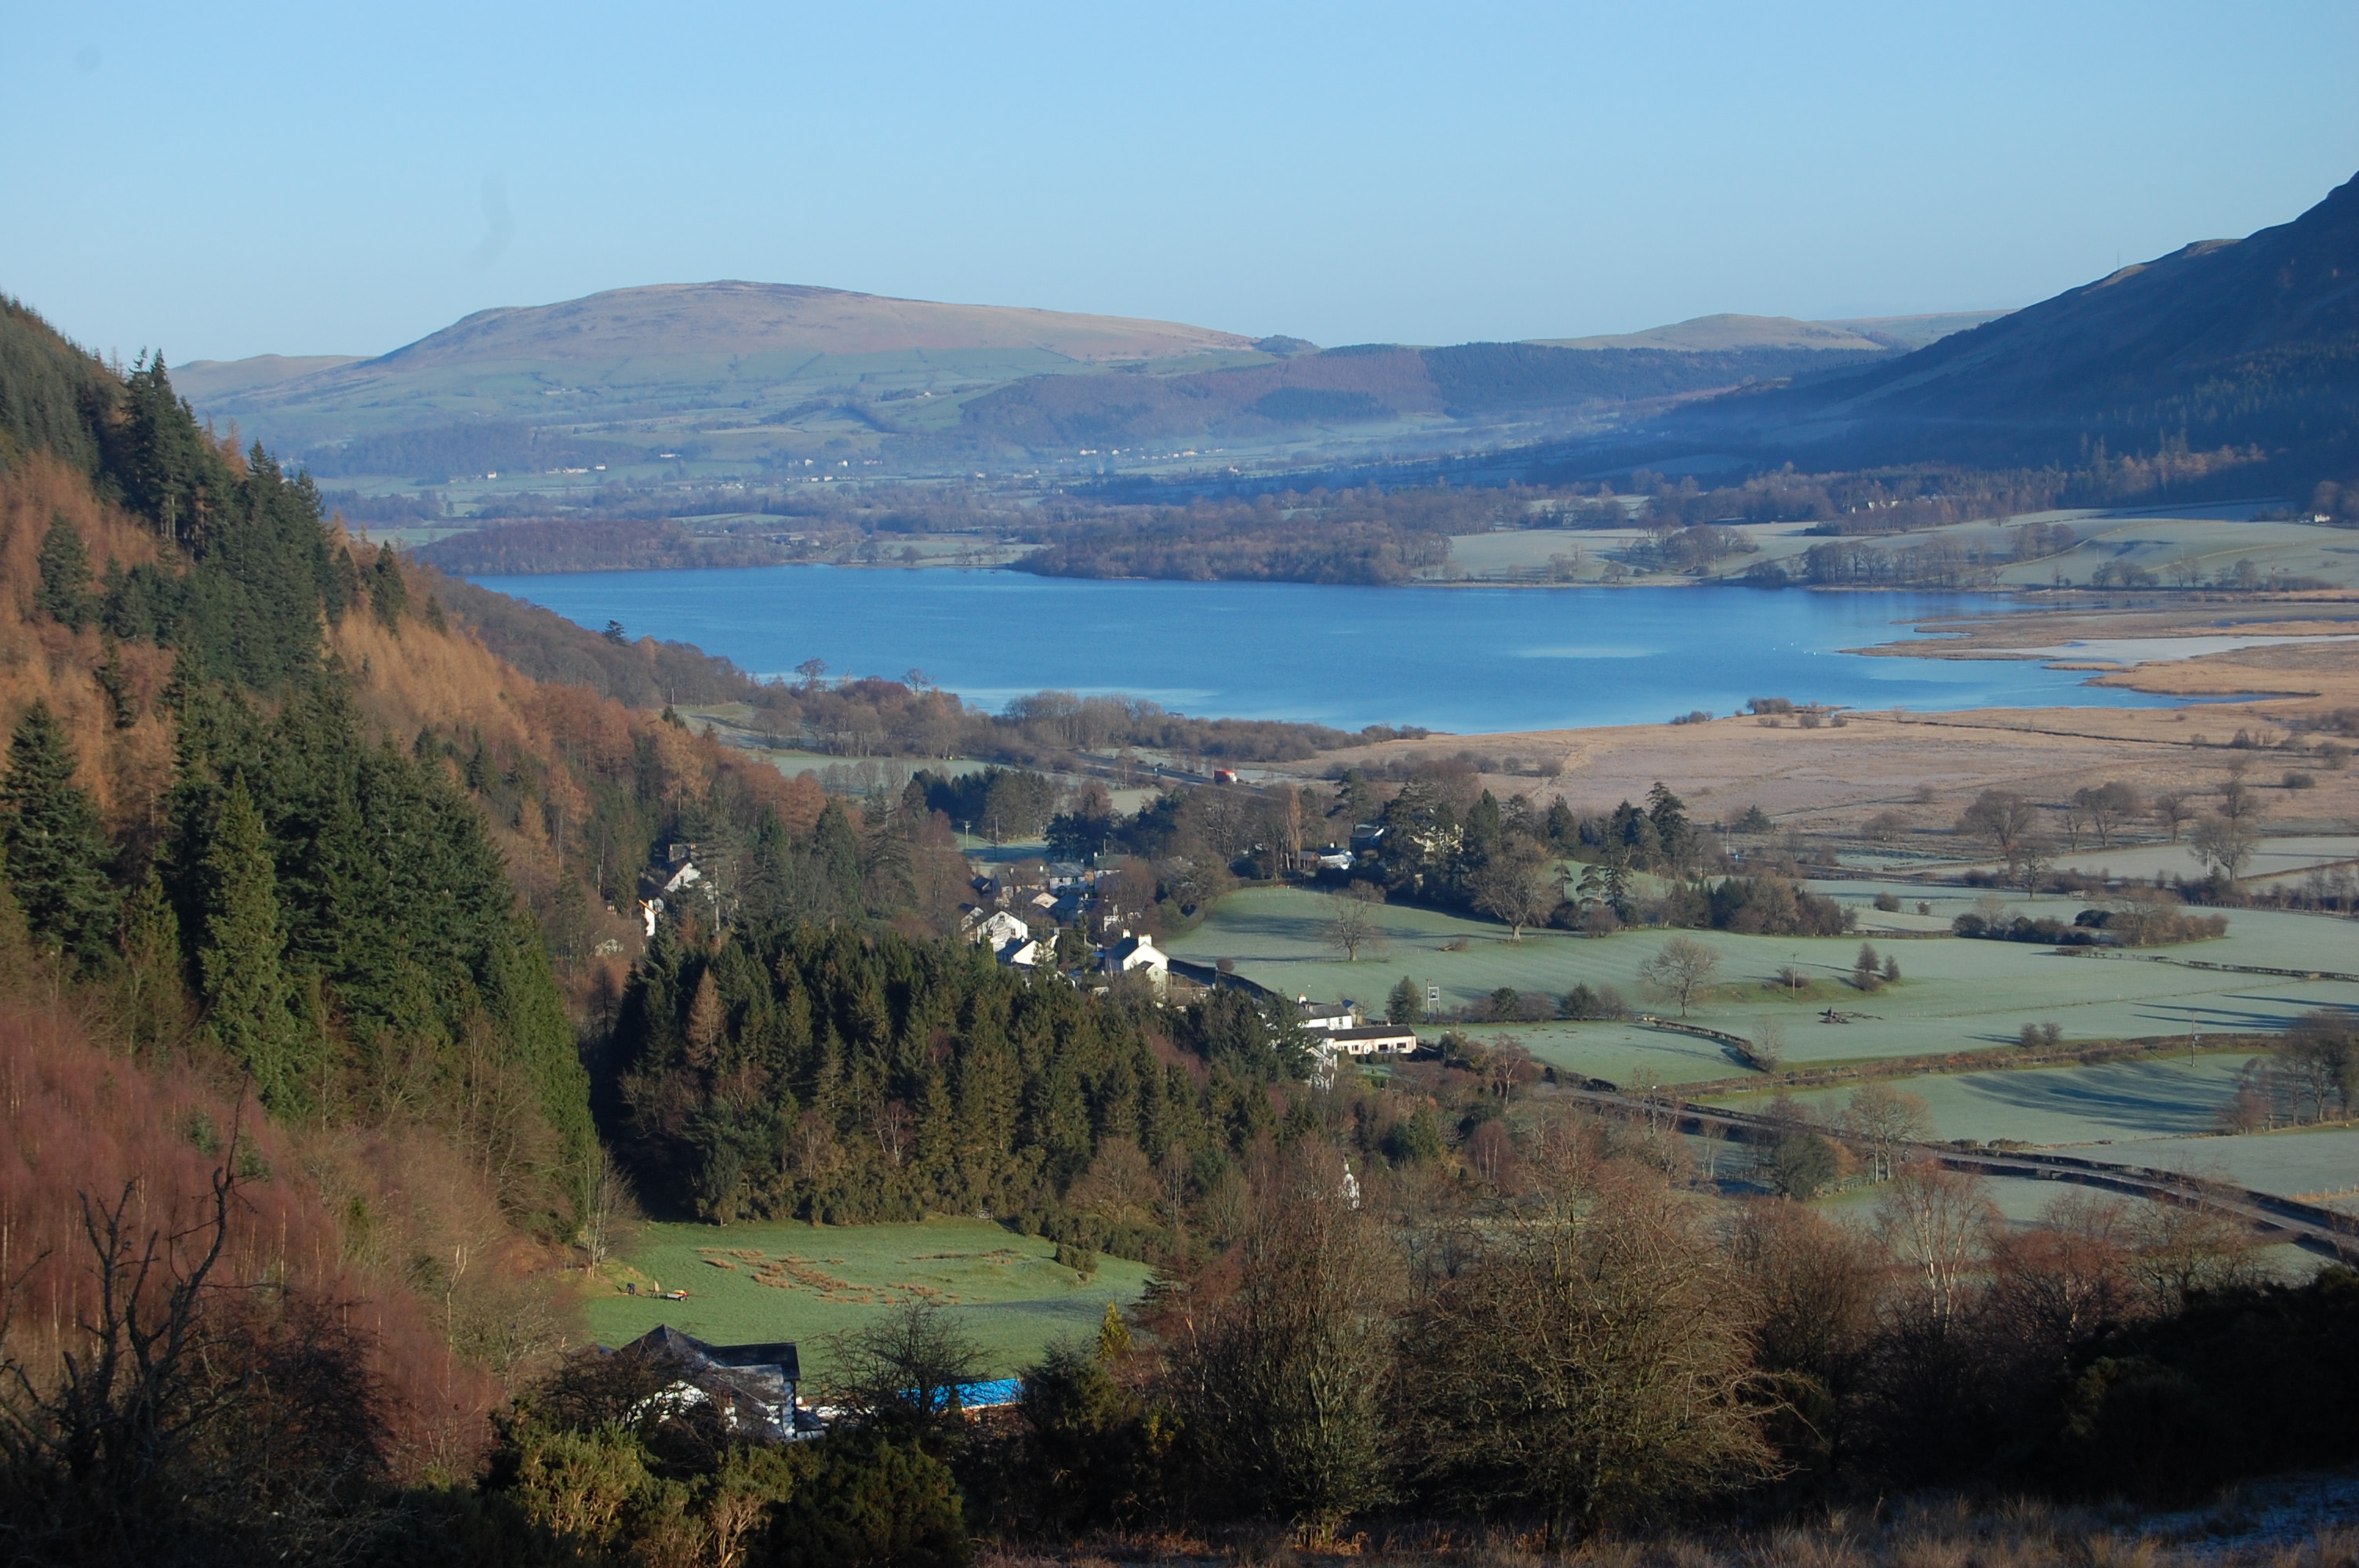 Bassenthwaite Lake in north-west England. Photo: Dr Ian Winfield